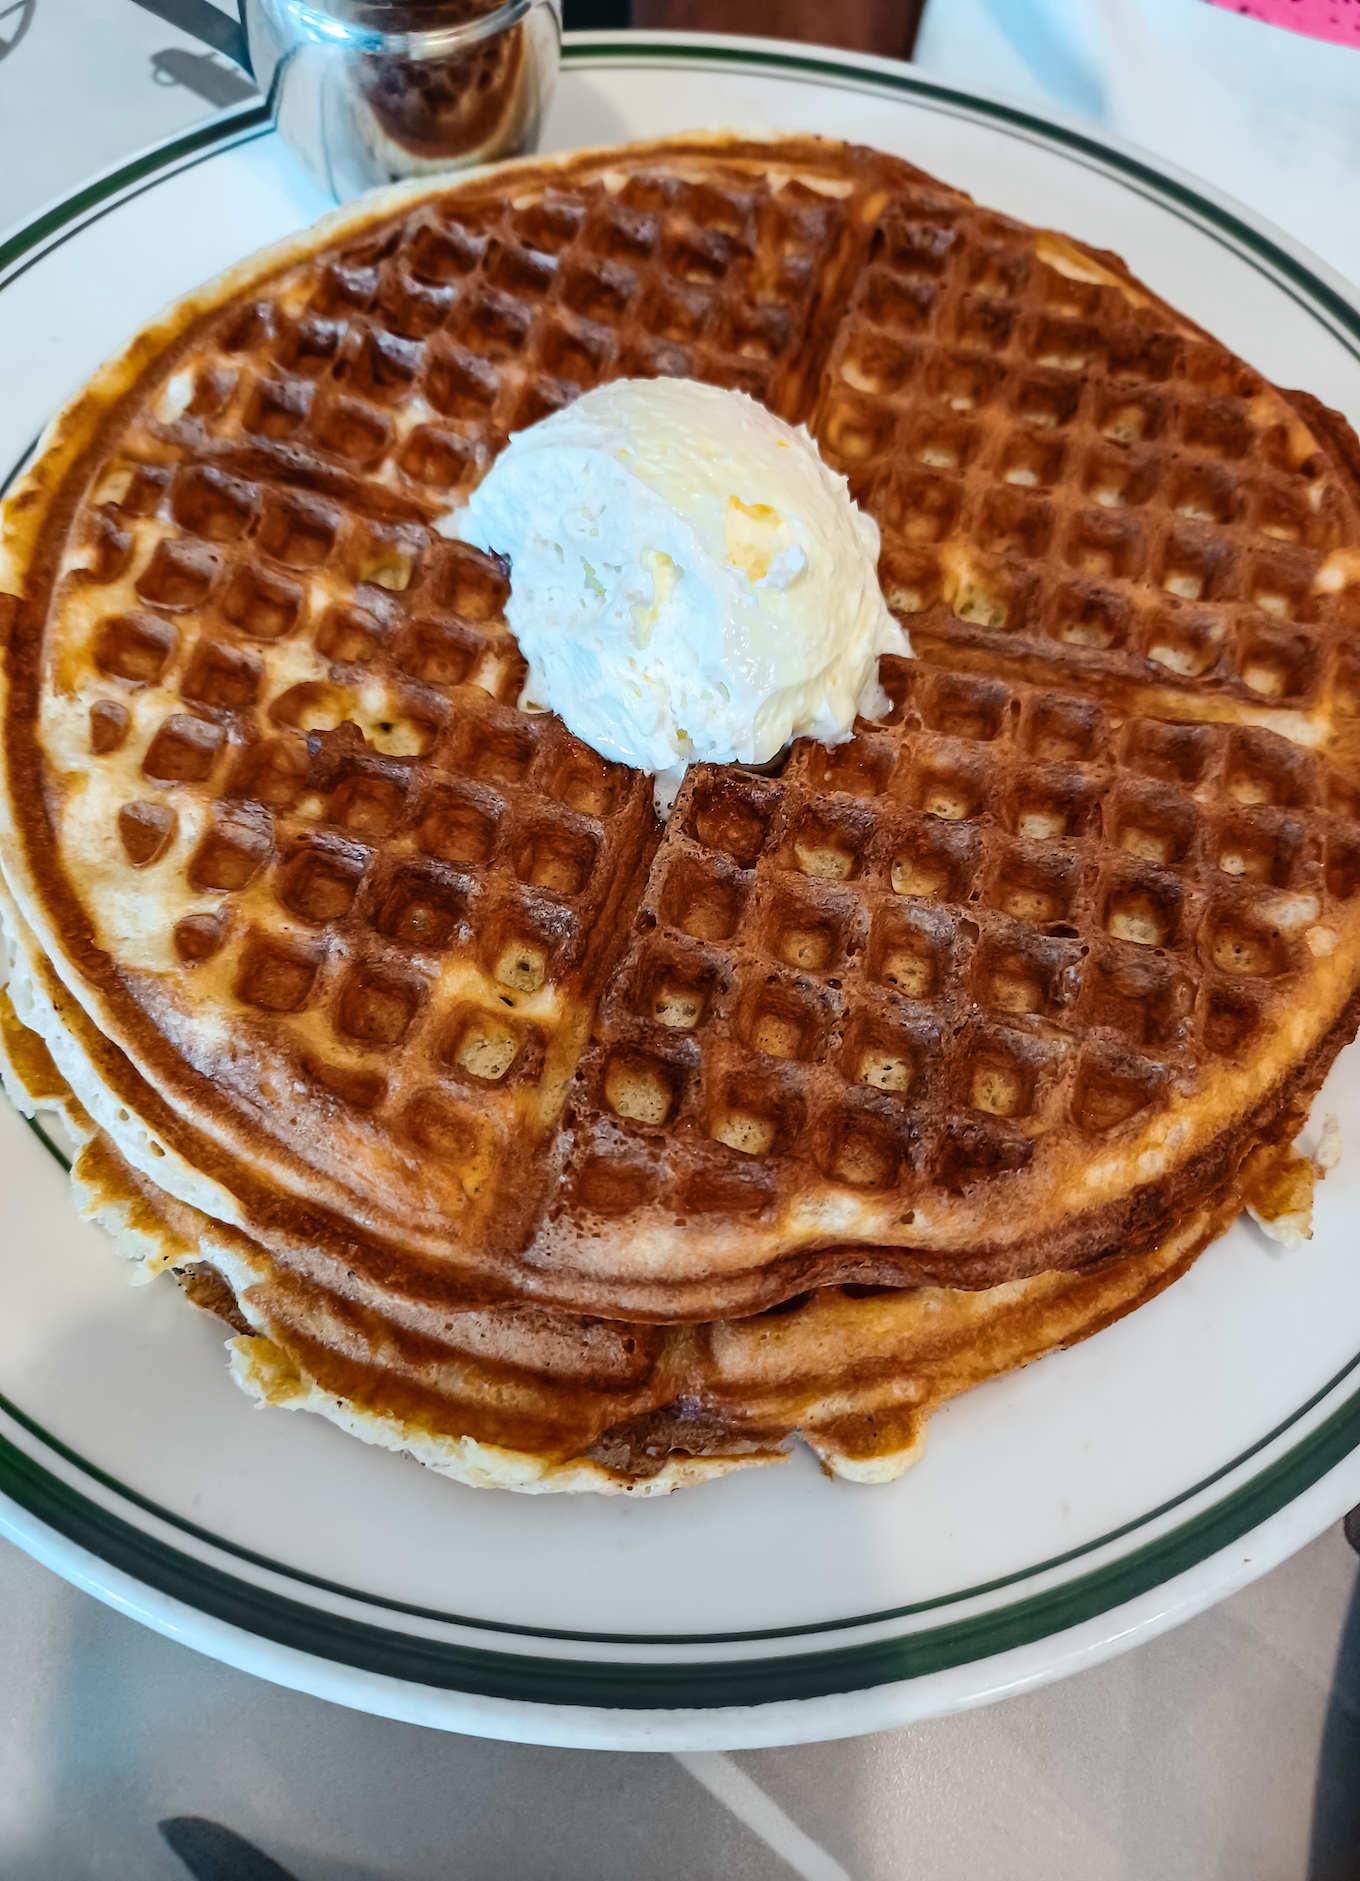 a plate of waffles with butter on top from ari's diner in washington dc